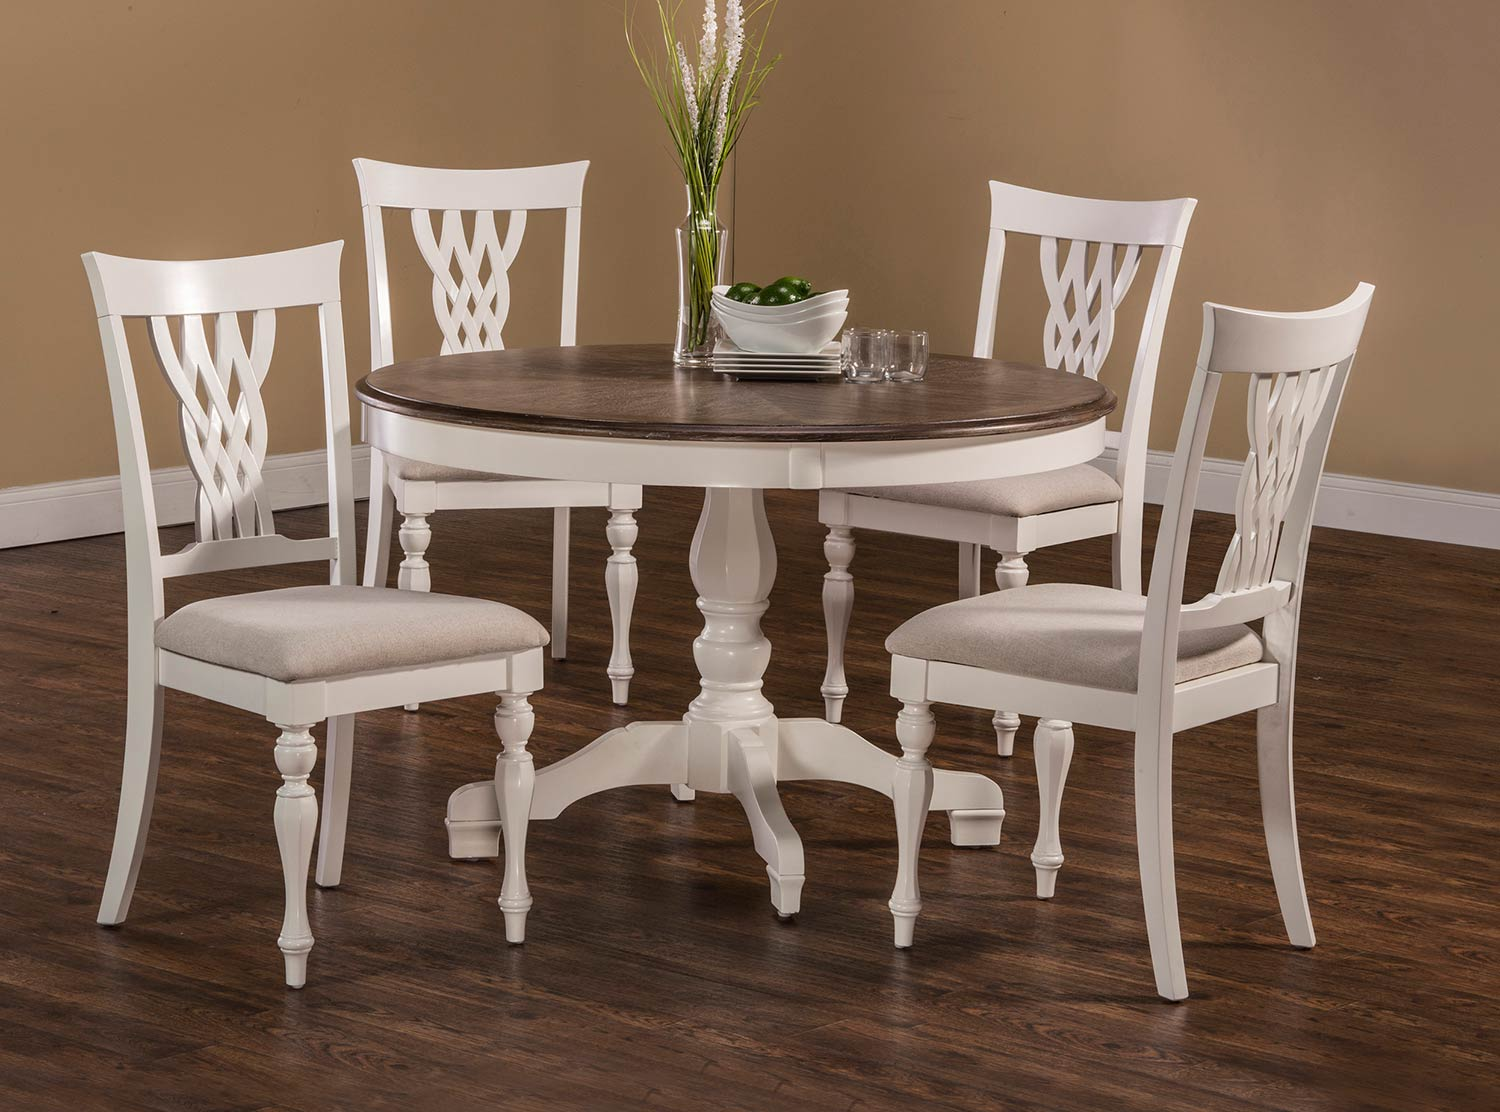 Hillsdale Bayberry-Embassy 5-Piece Round Dining Set - White